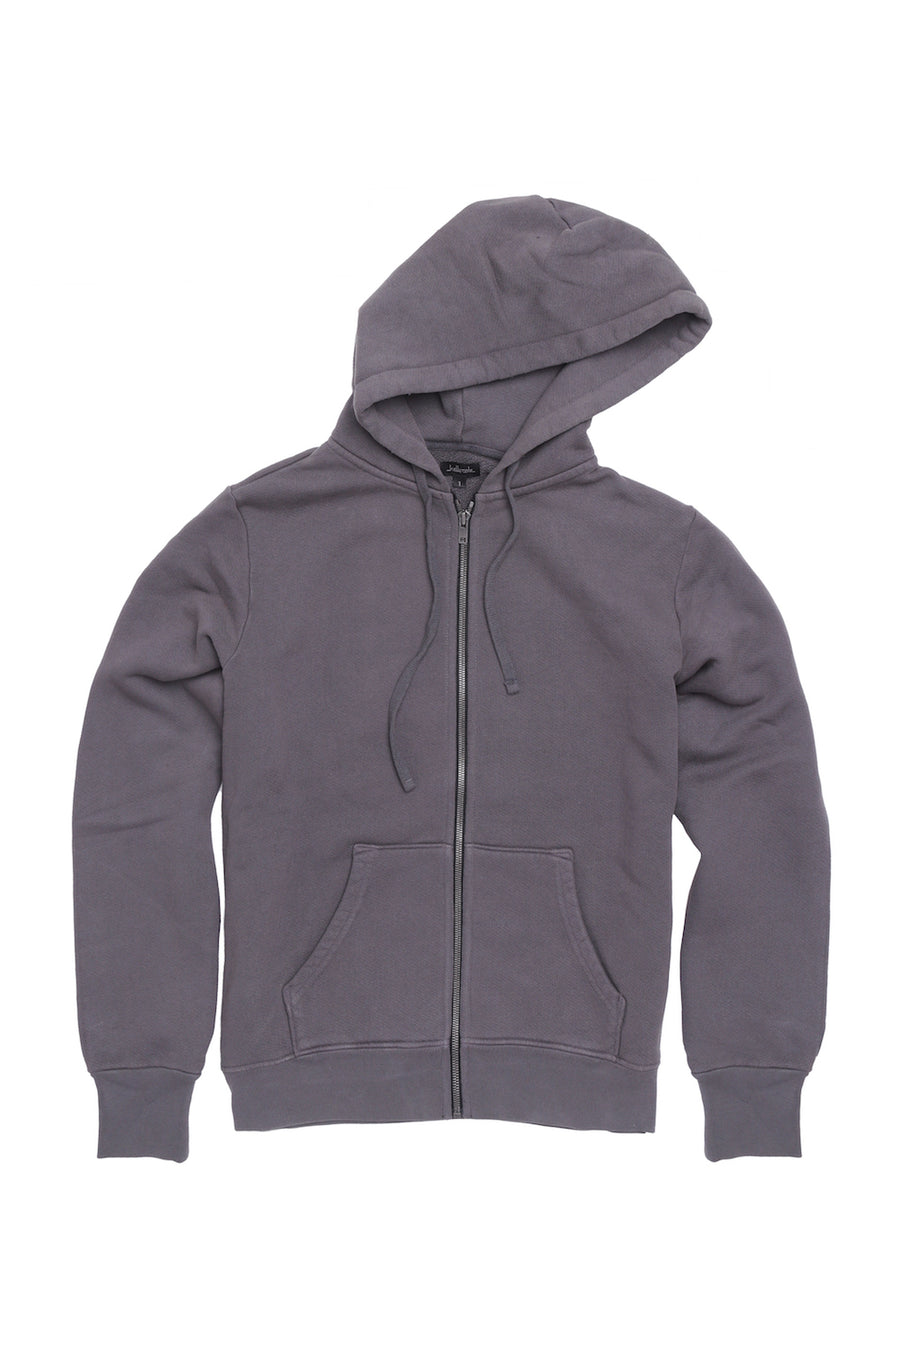 Fitted French Terry Hooded Sweatshirt - Grey